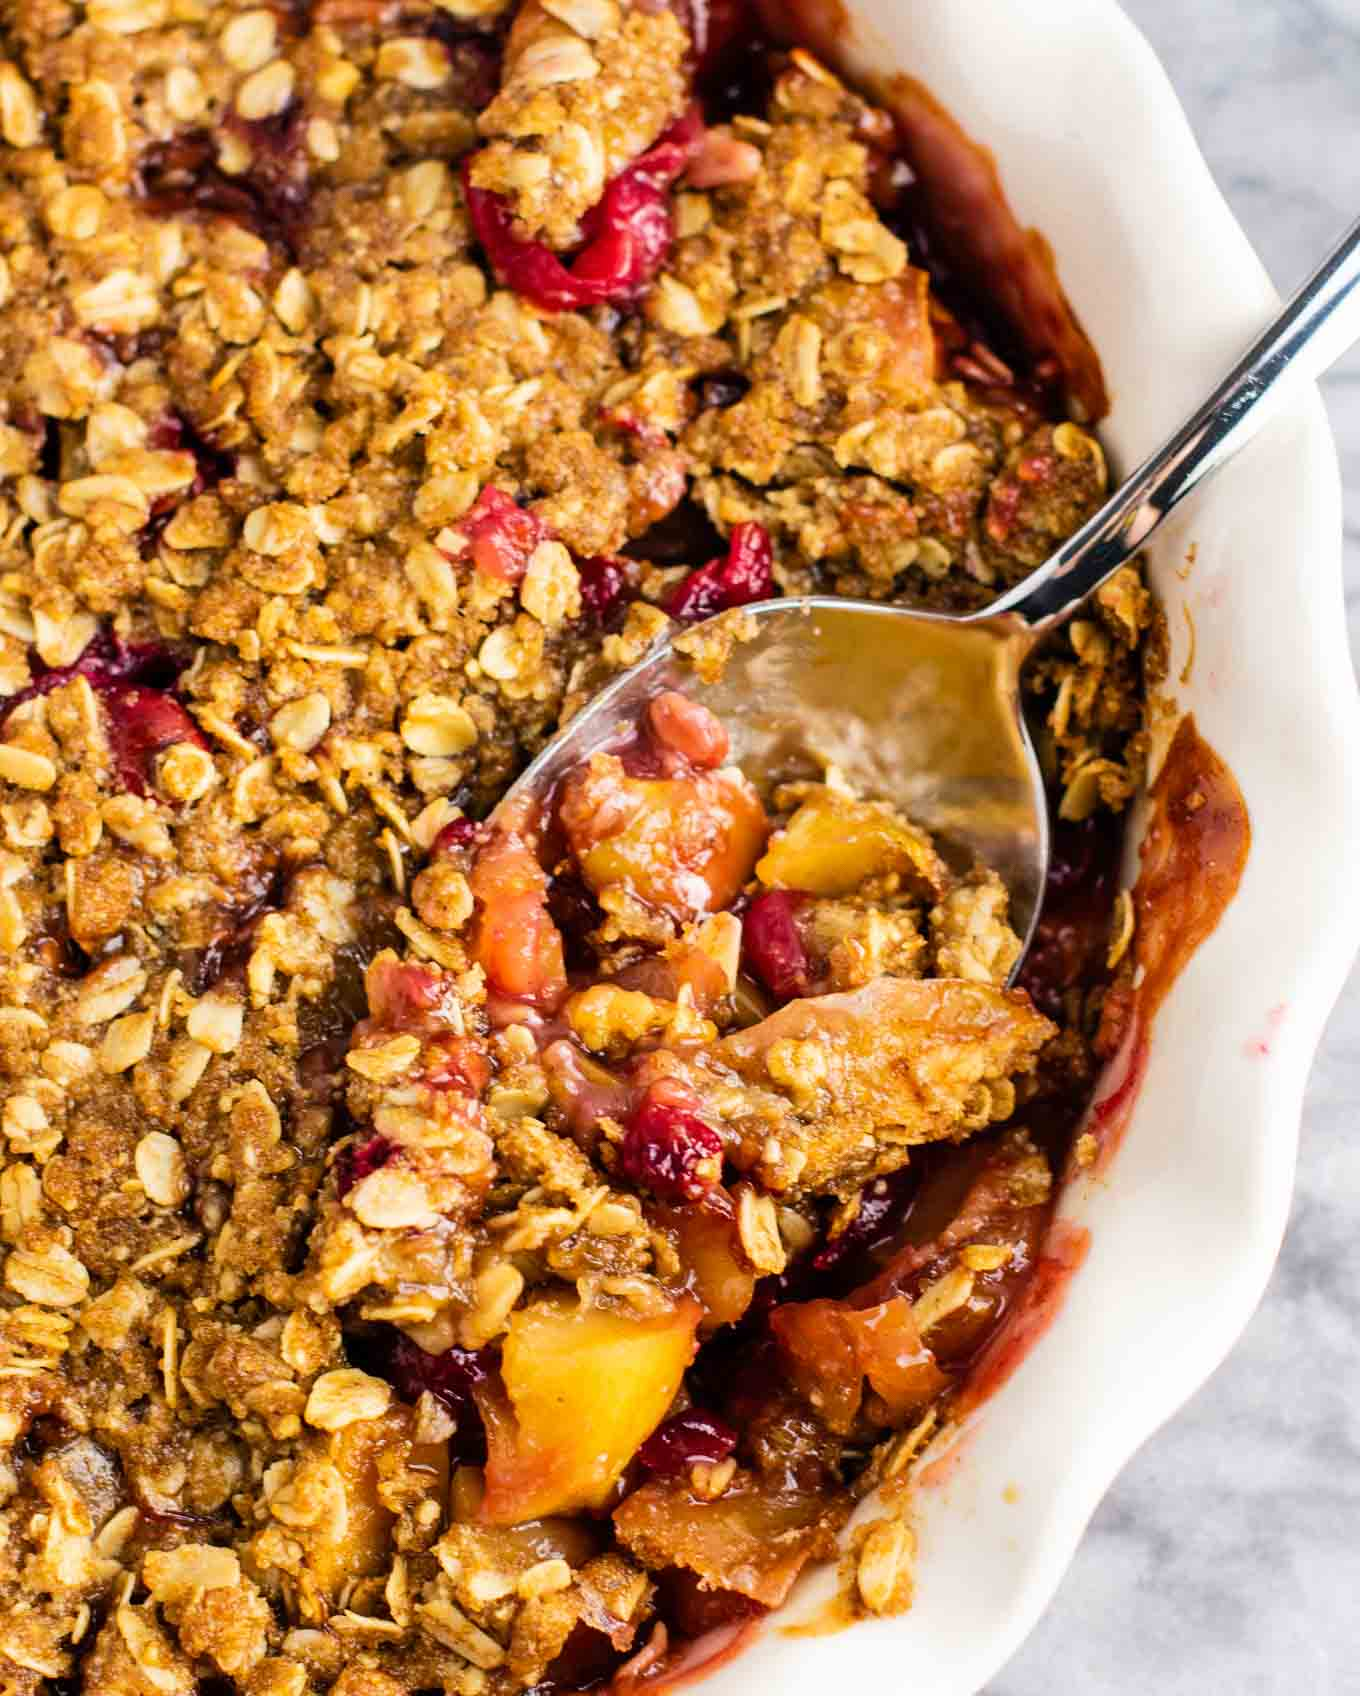 Fresh cranberry apple crisp with a gluten free oat topping. This is AMAZING! Make this for Thanksgiving, Christmas, or any day in between! #cranberry #cranberryrecipe #cranberryapplecrisp #dessert #glutenfree #glutenfreedessert